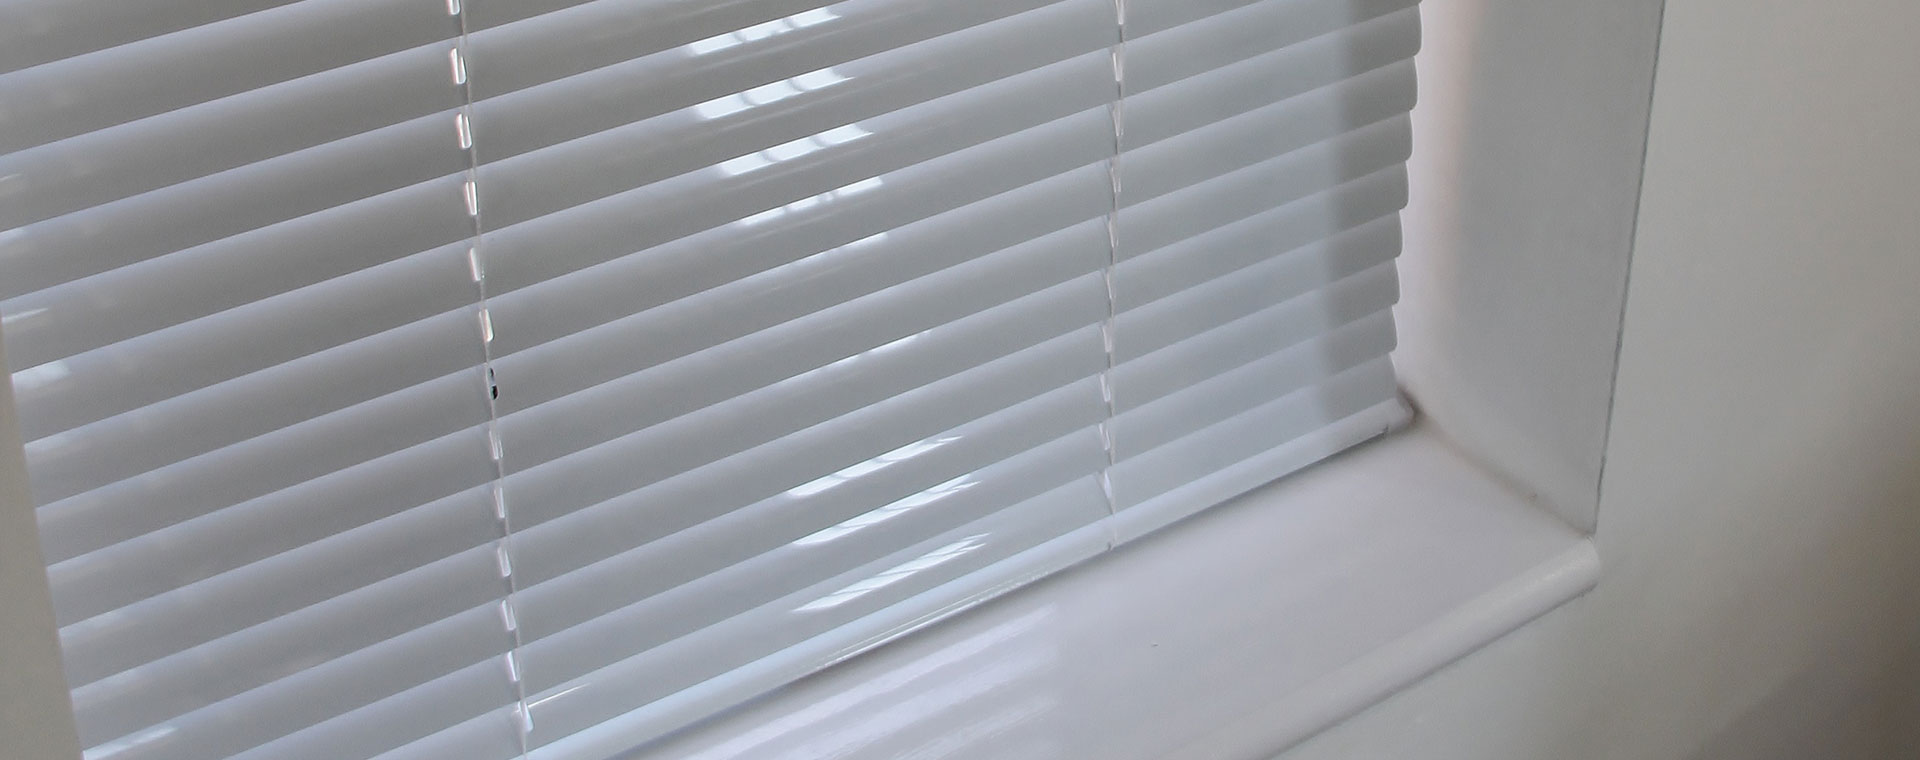 Aluminium Blinds Slide 2